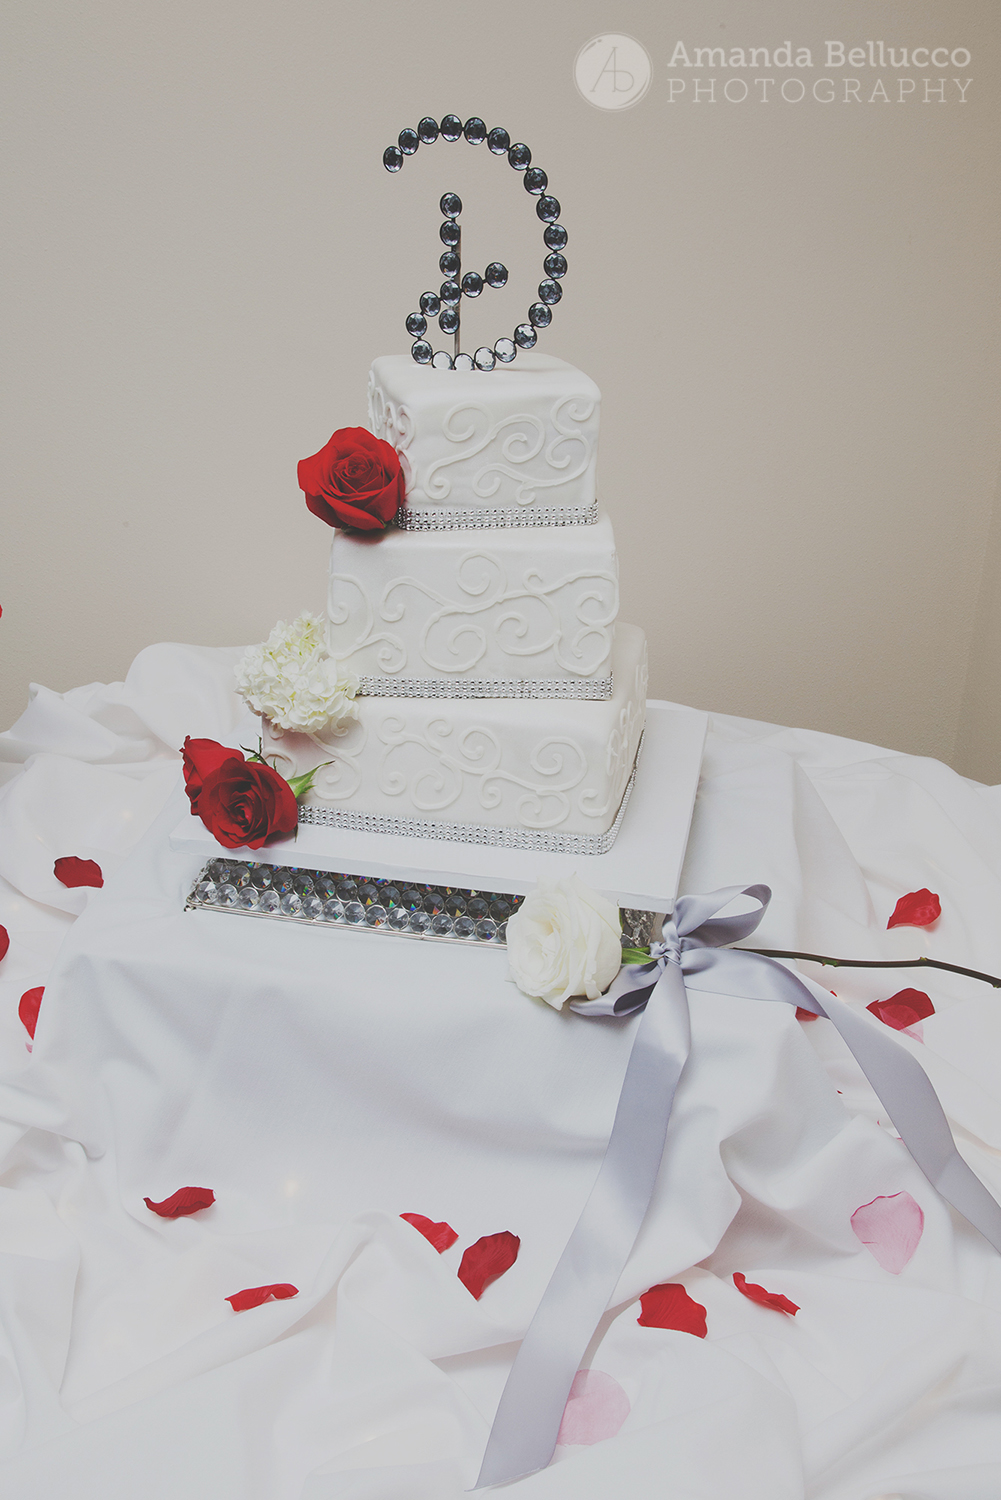 Three tier wedding cake with roses during the reception at the Italian American Community Center.